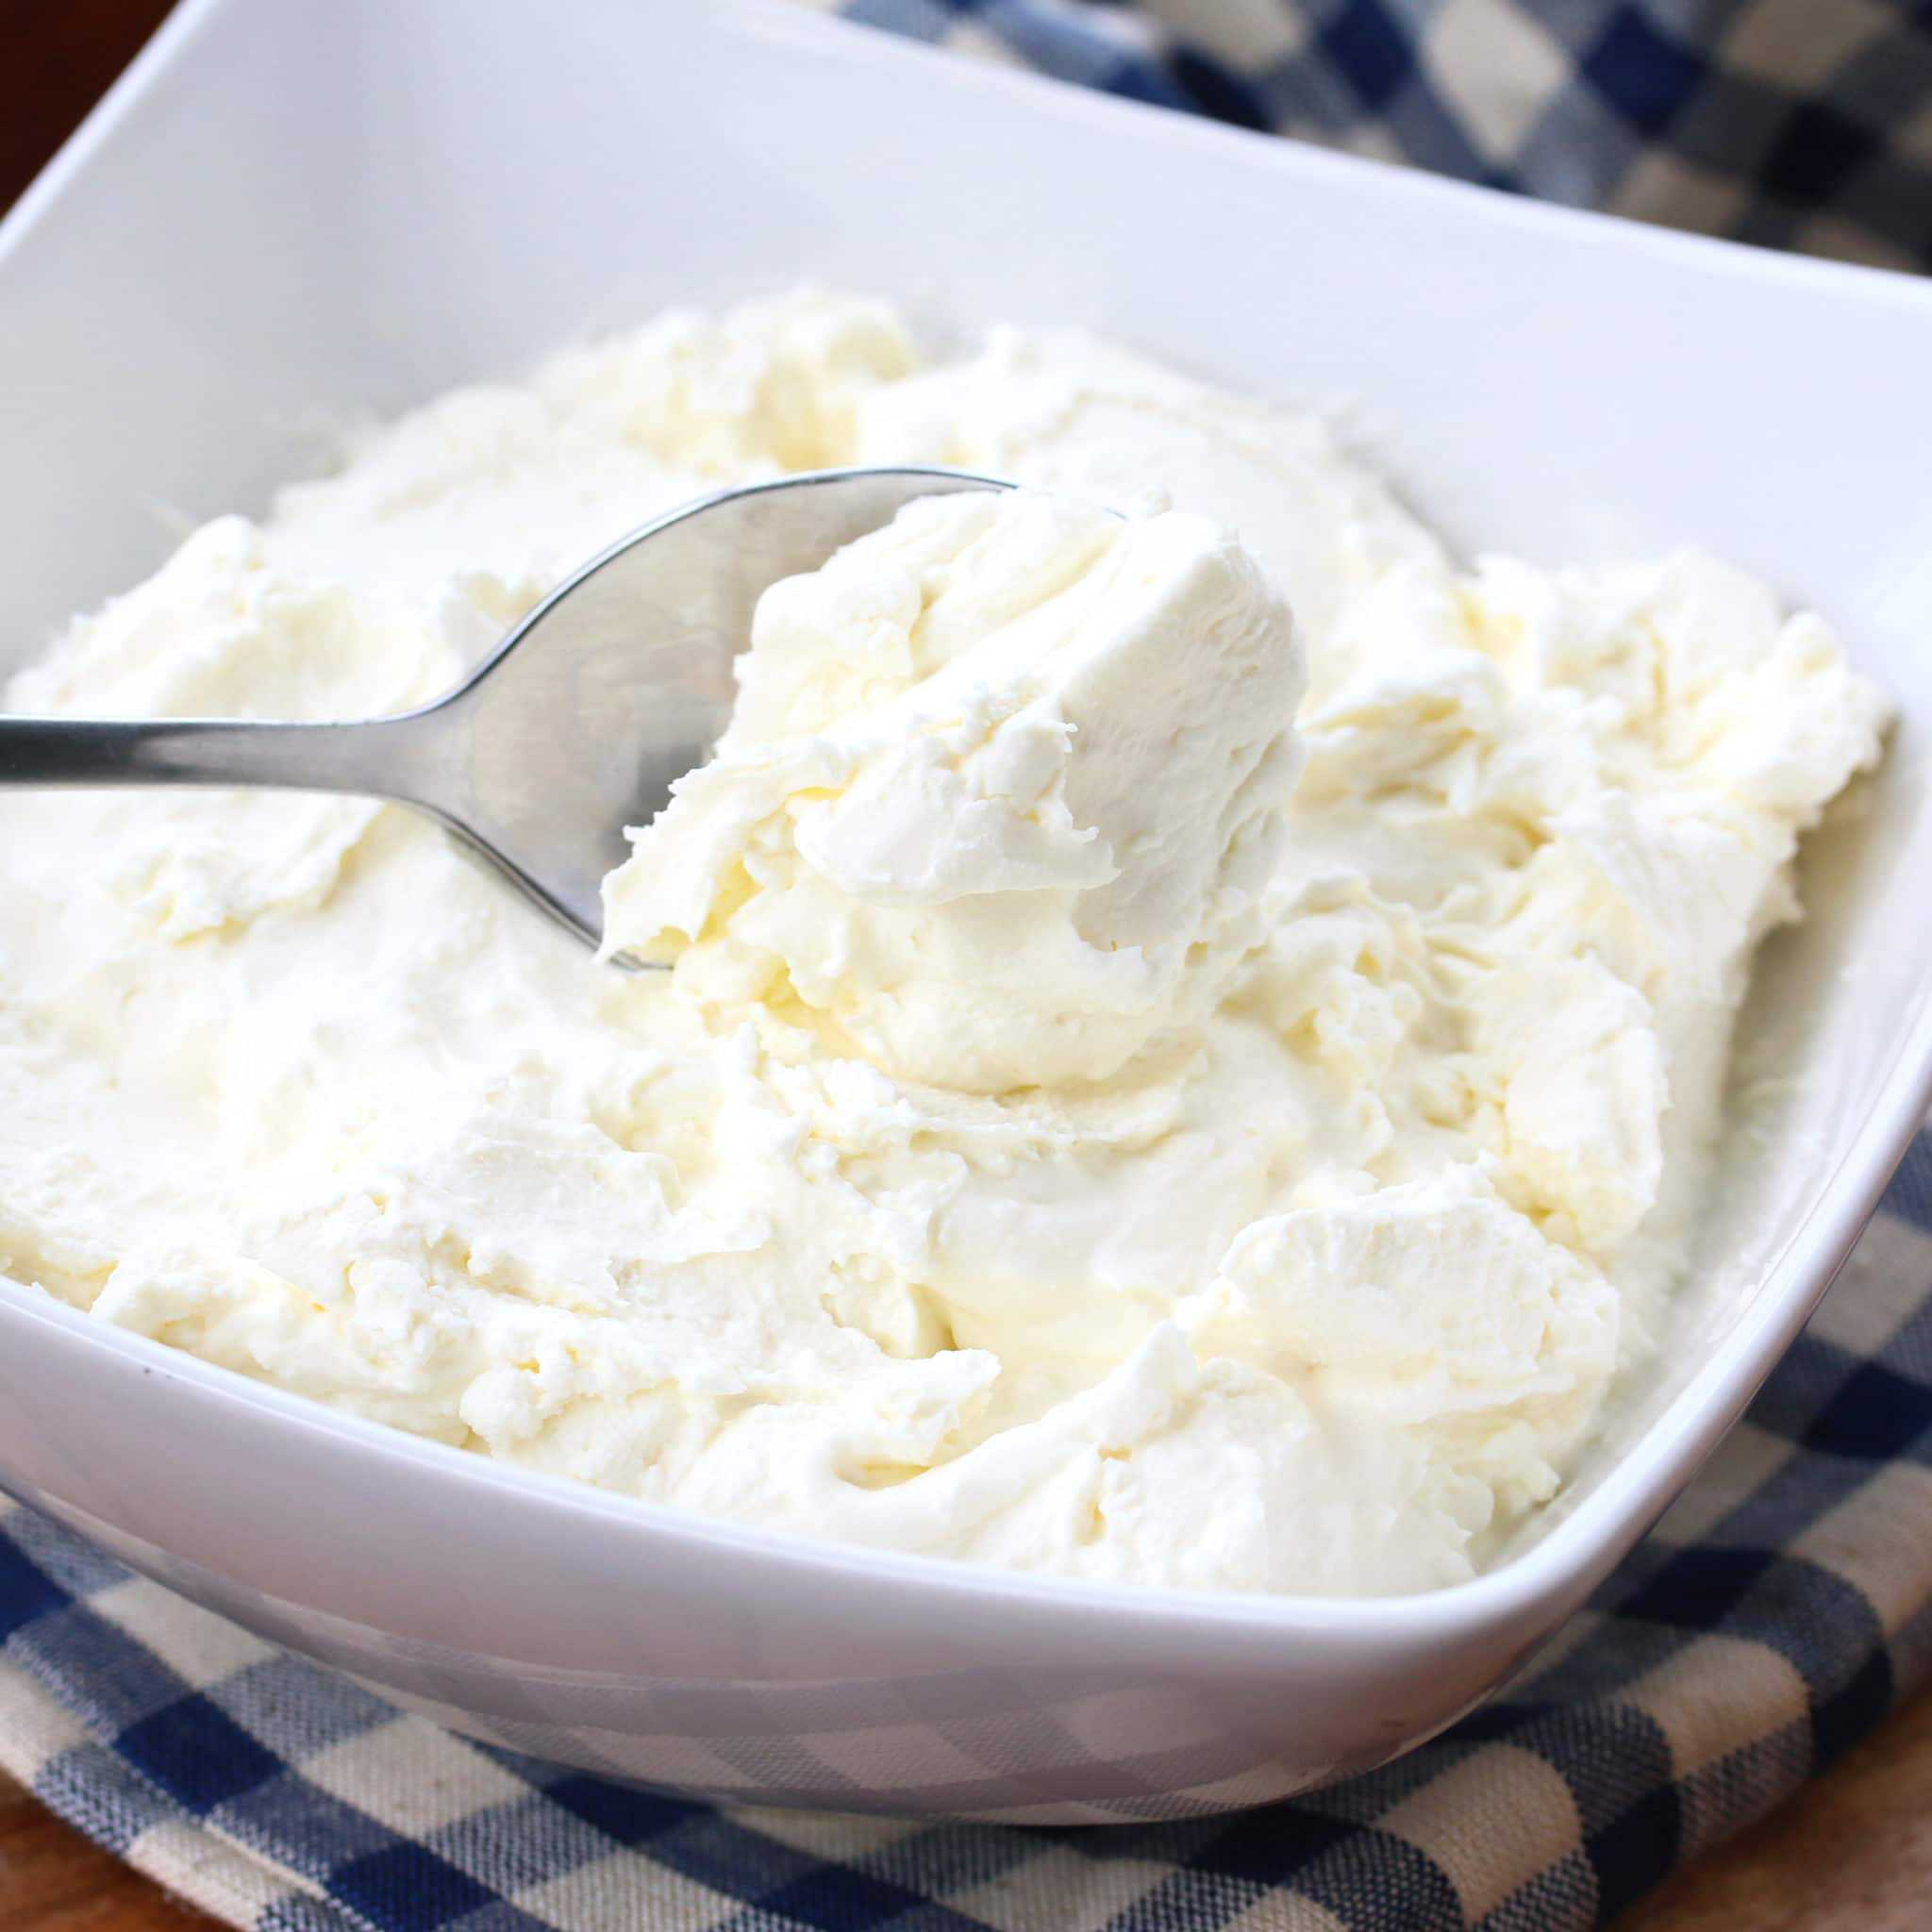 mascarpone recipe how to make homemade traditional authentic easy best foolproof